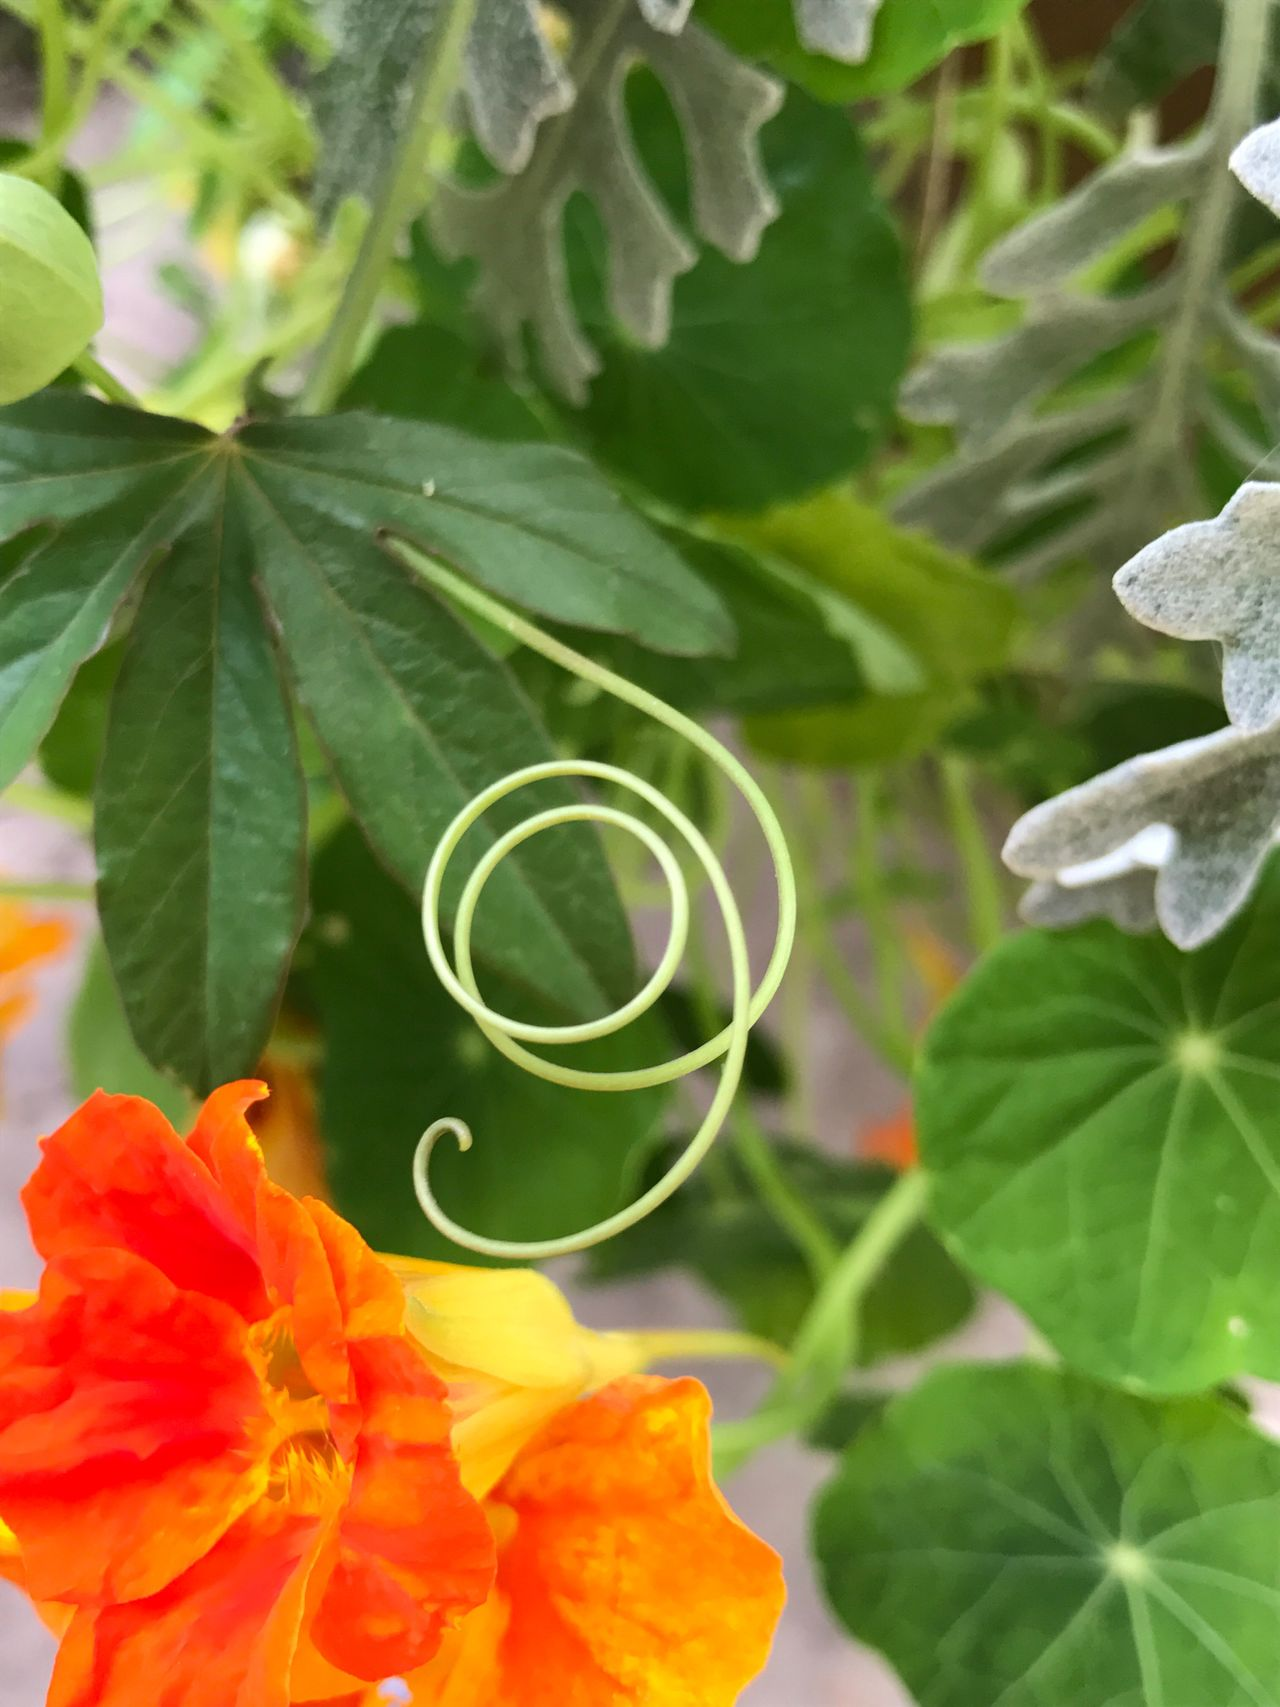 Whirl Dusty Miller Green Color Tendril Blooming Growth Leaf Nine In Nature Plant Flower Green Color Close-up Fragility Orange Nasturtium 9 Swirl Swirly Beauty In Nature Freshness Natural Nine Check This Out Flower Head Number 9 Number Nine